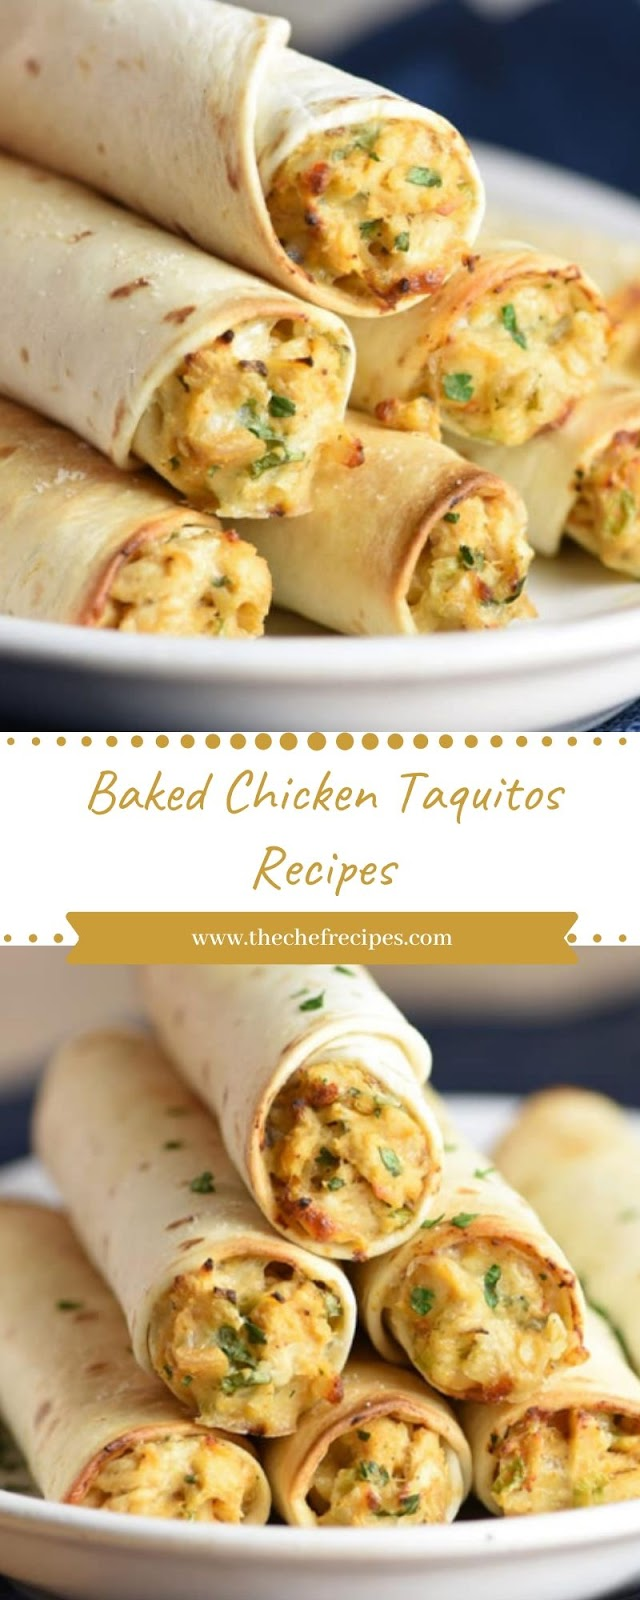 Baked Chicken Taquitos Recipes